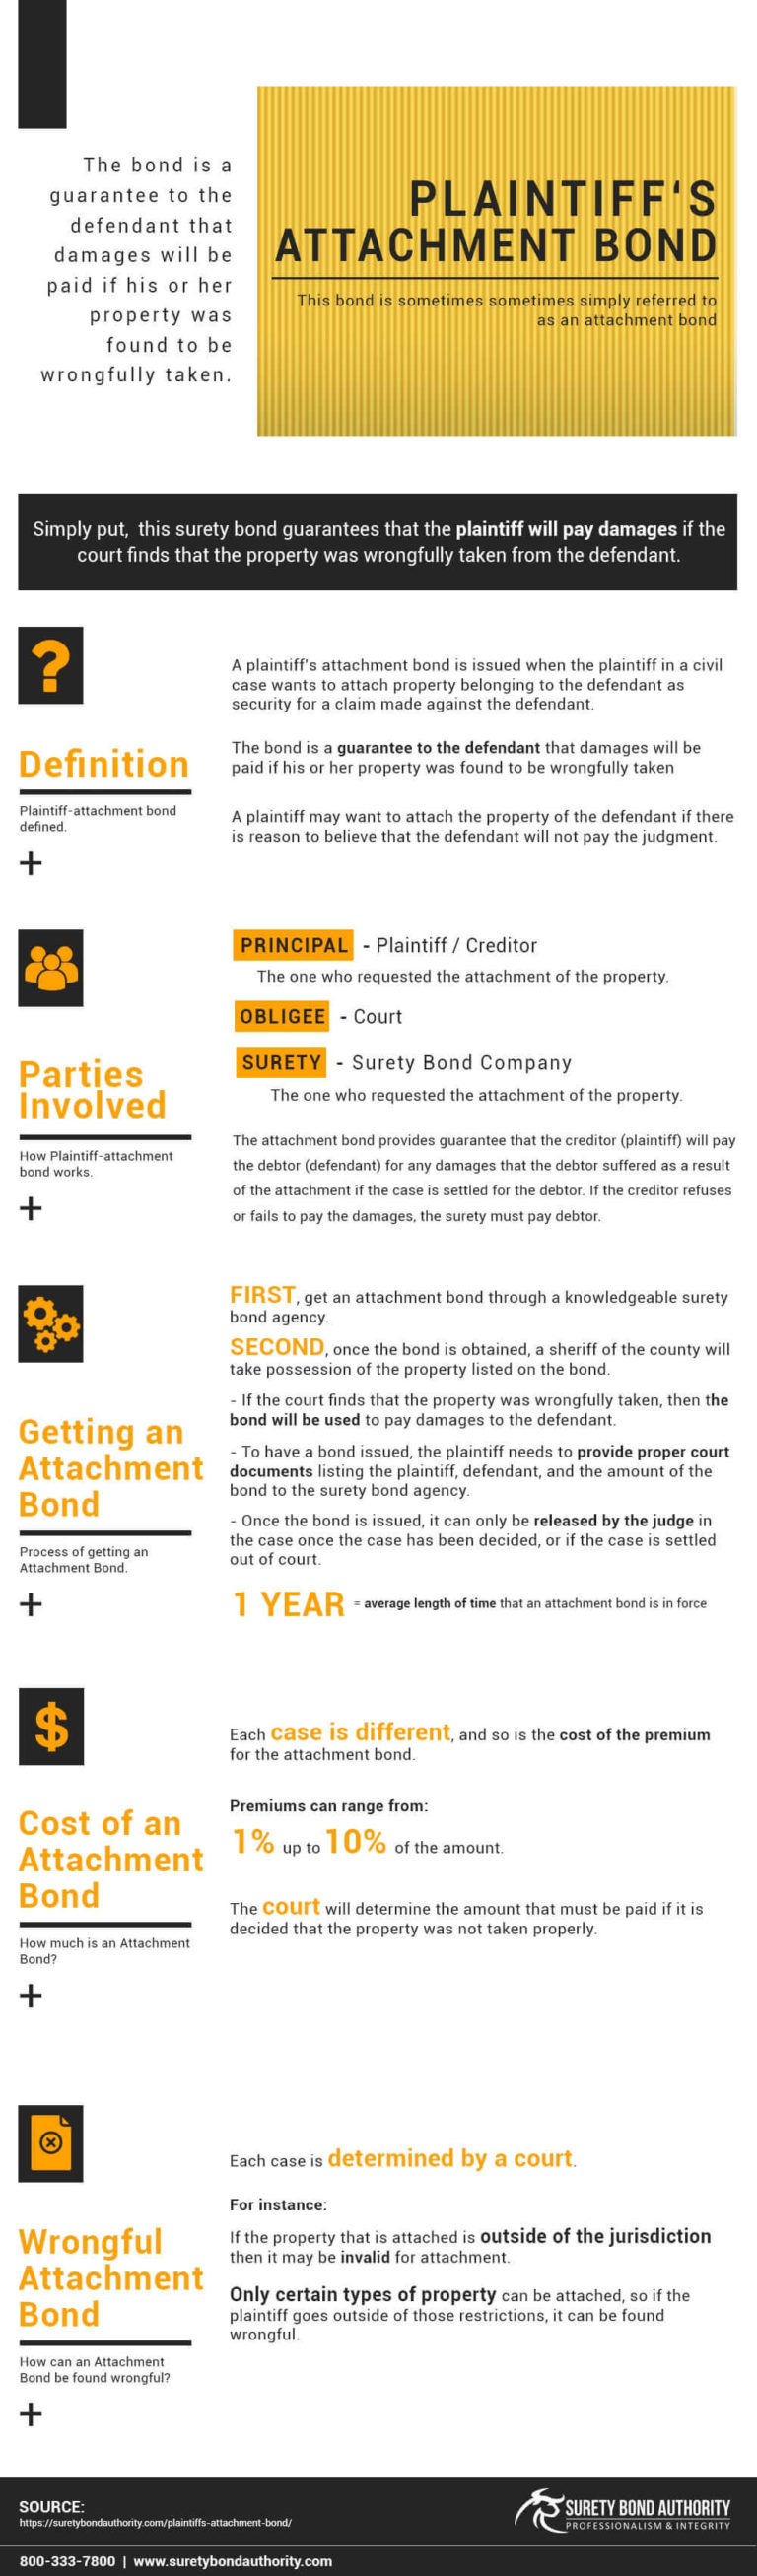 Plaintiff's-Attachment Bond Infographic